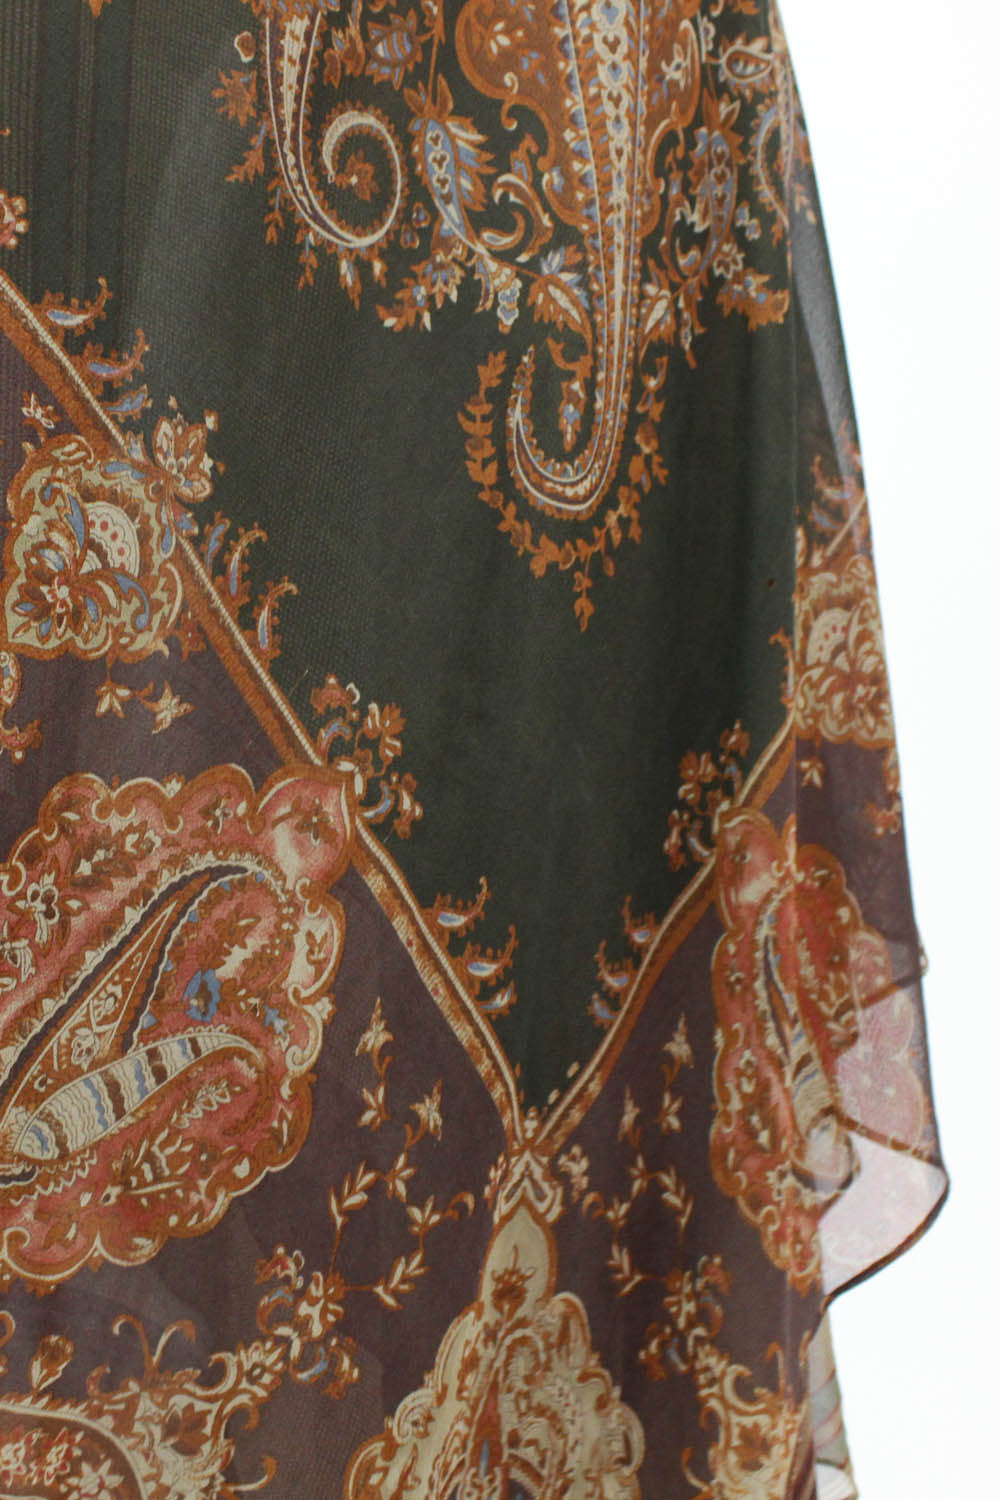 Ralph Lauren paisley dream skirt S/M